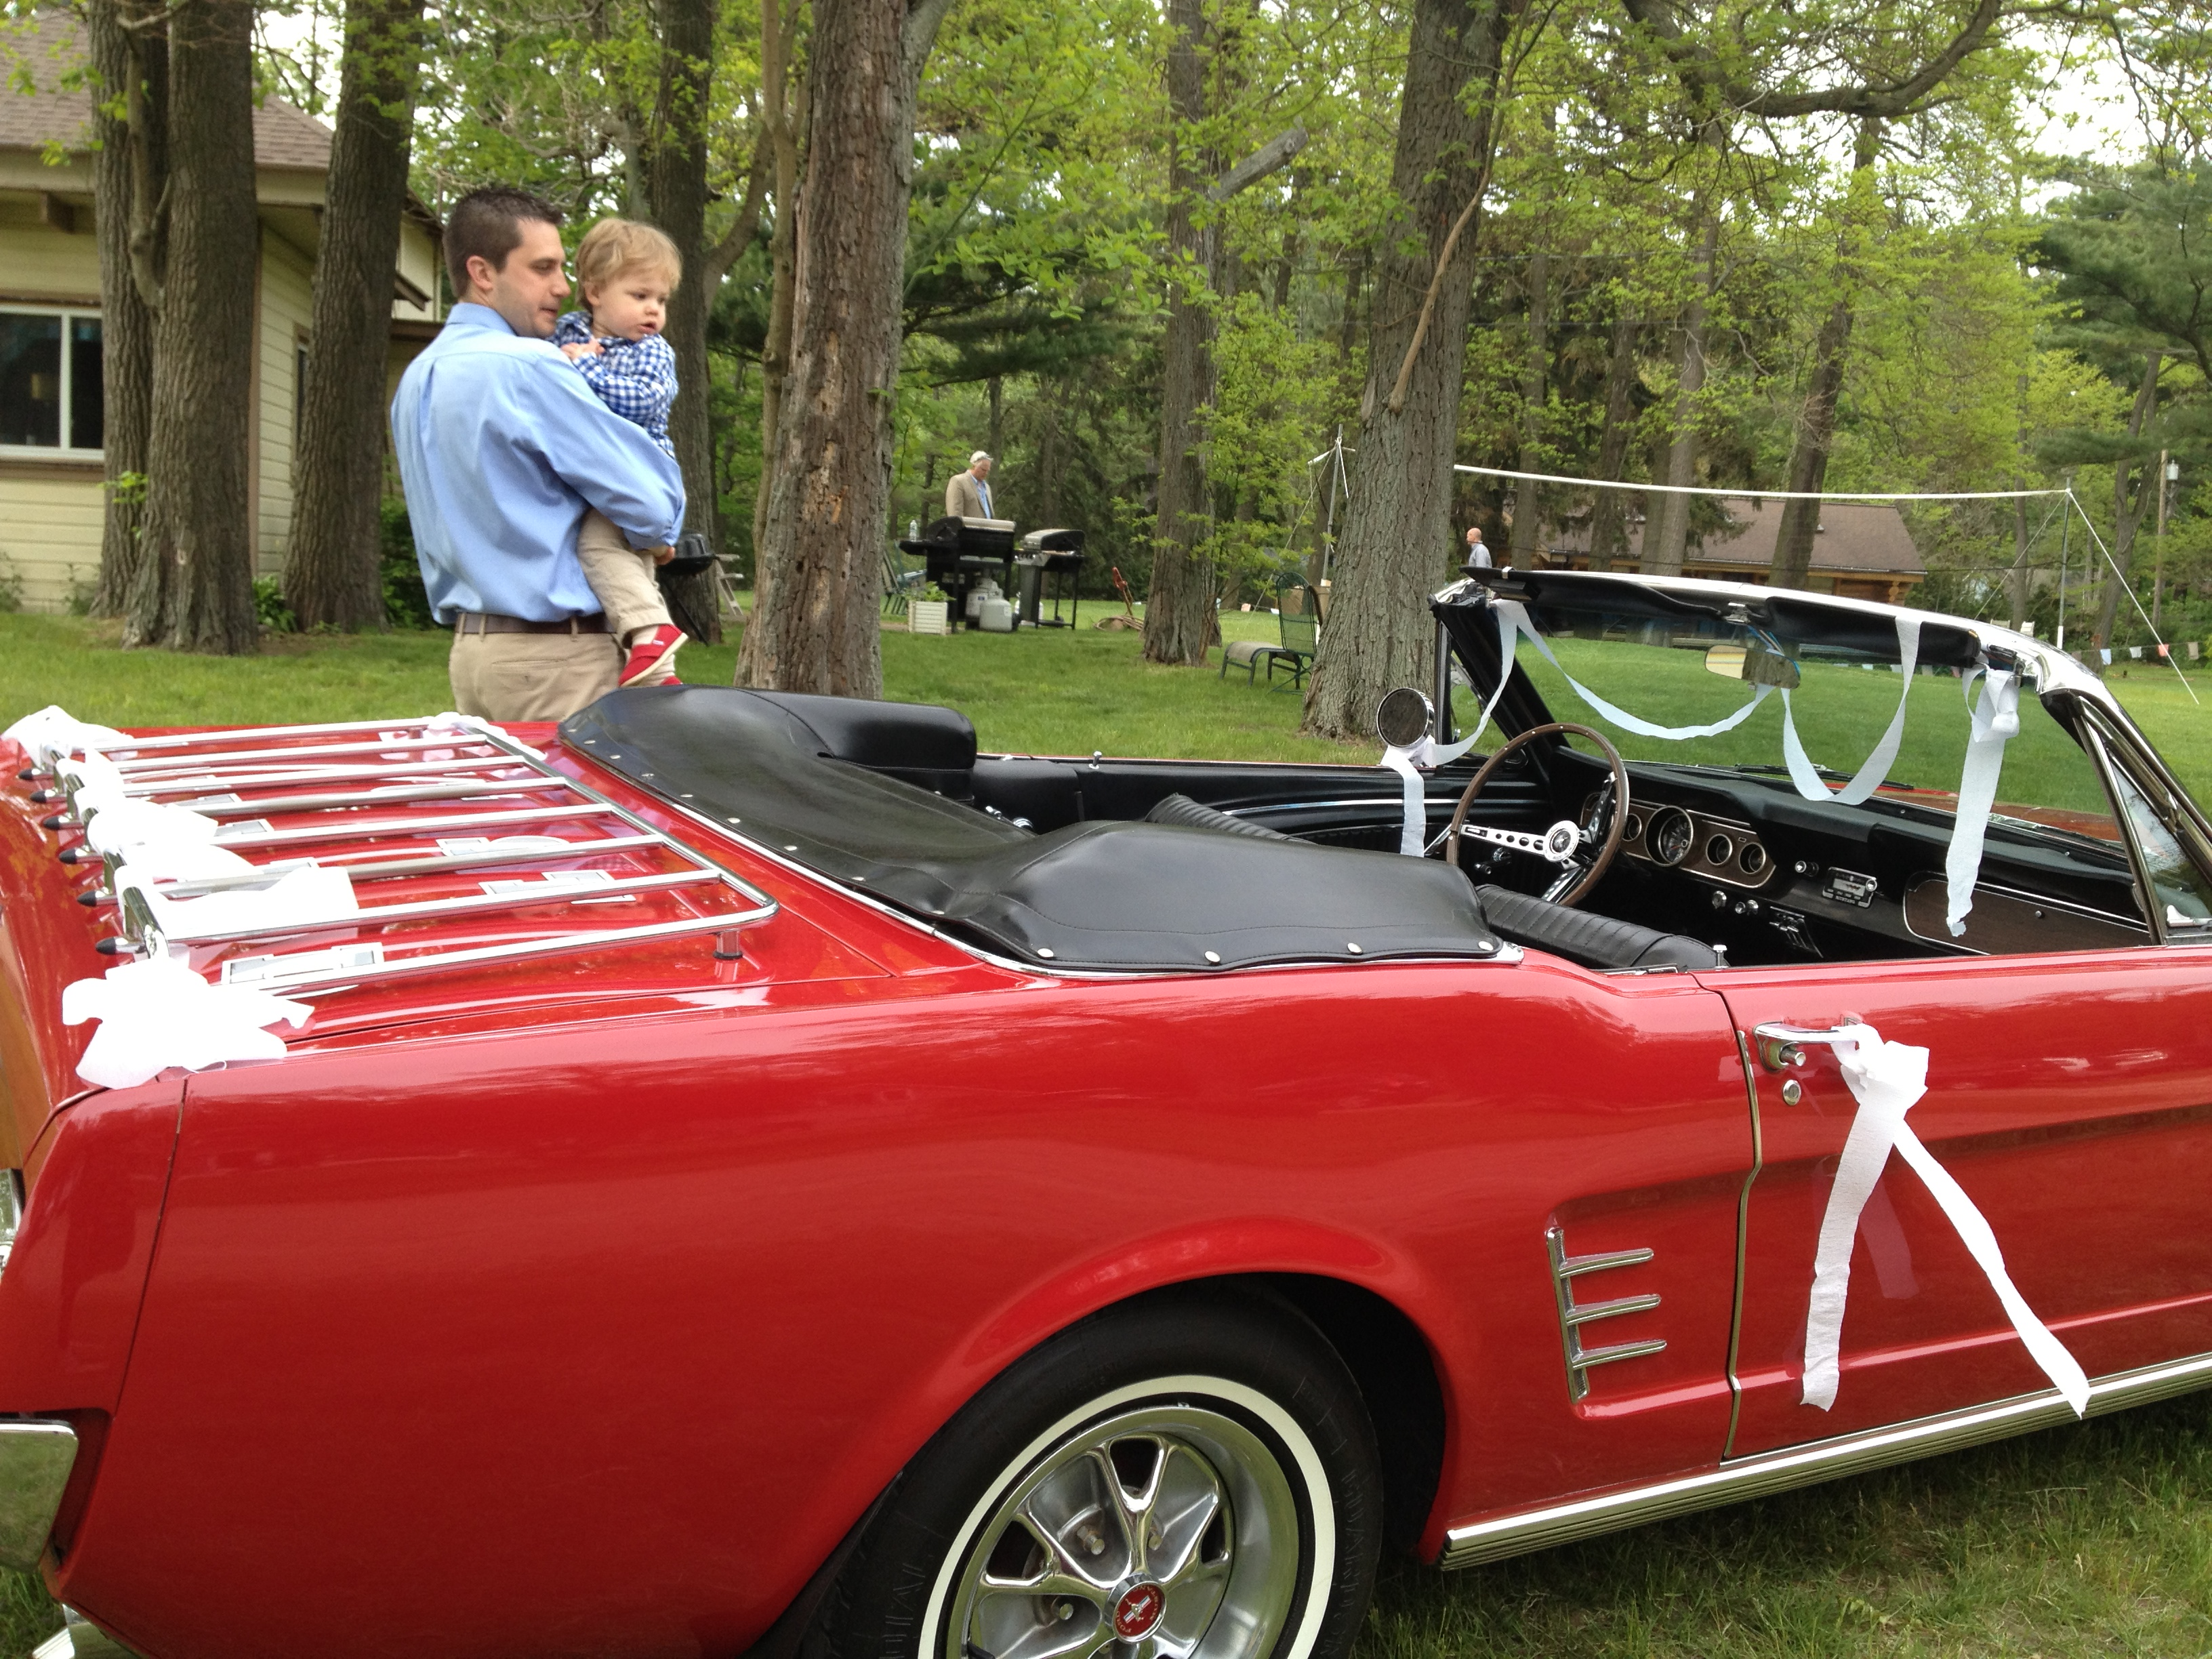 two handsome boys and a classy getaway car.